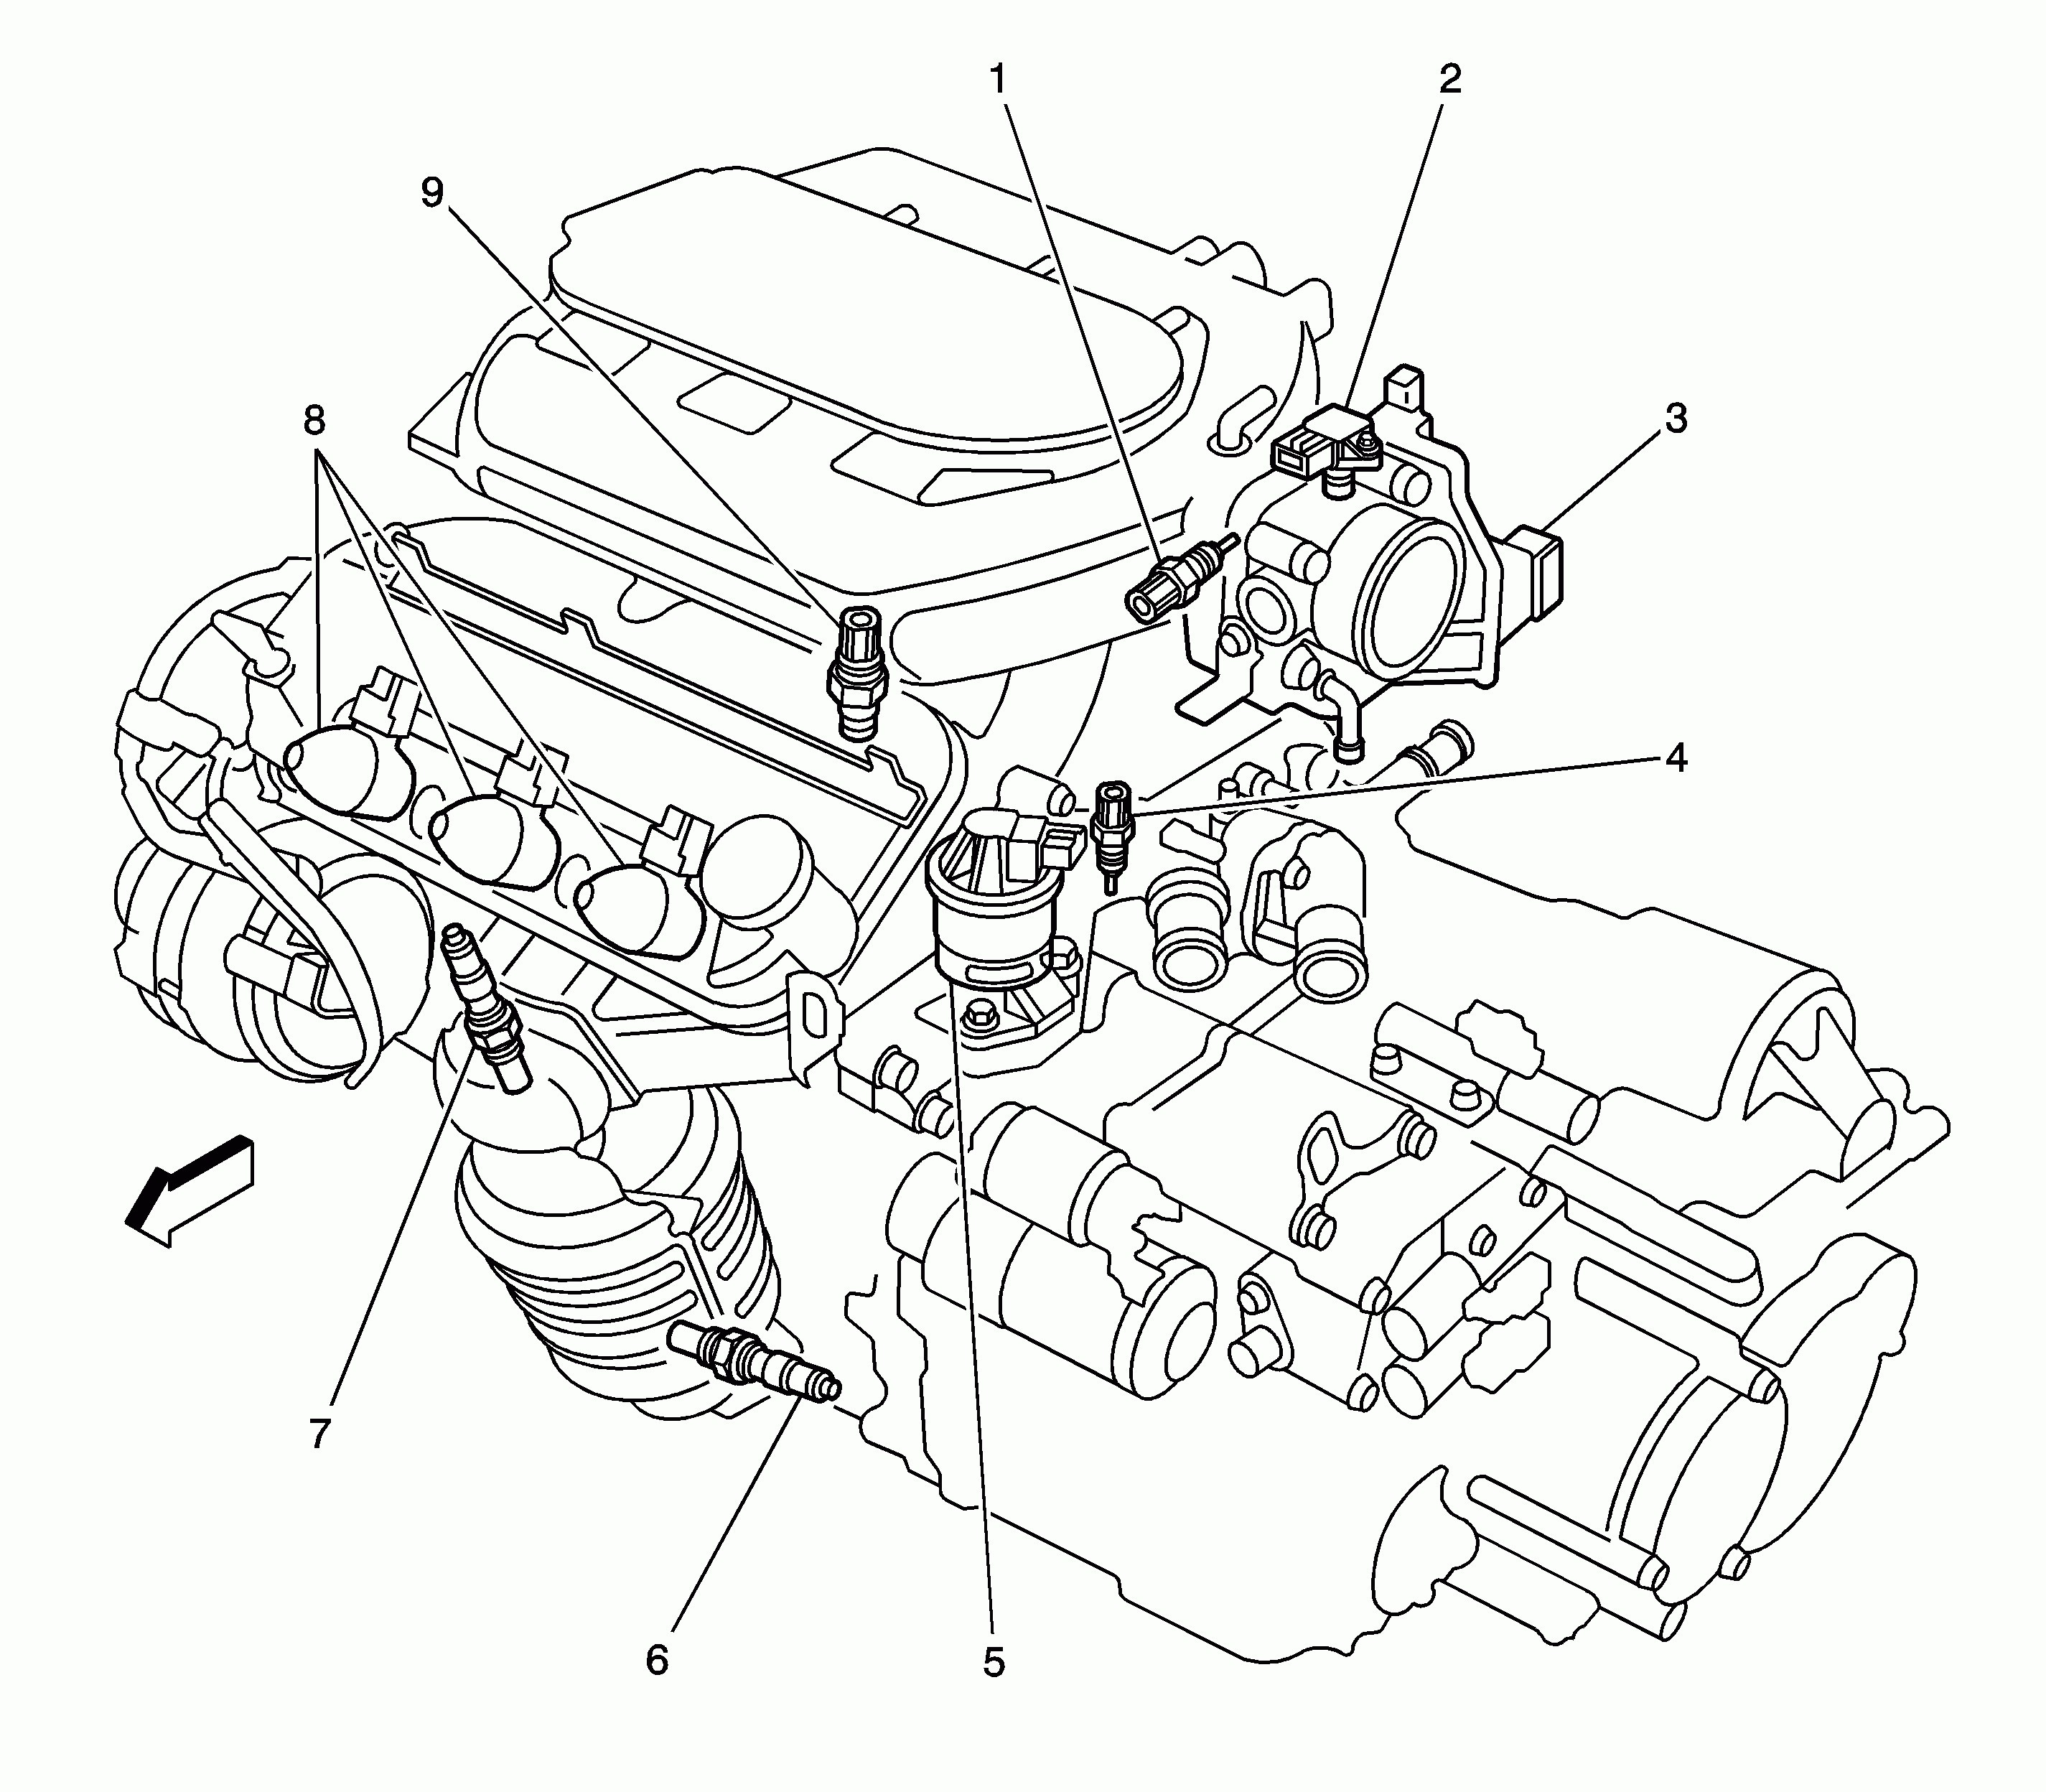 2006 Saturn Ion Engine Diagram Saturn 3 0 Engine Diagram Trusted Wiring Diagrams • Of 2006 Saturn Ion Engine Diagram